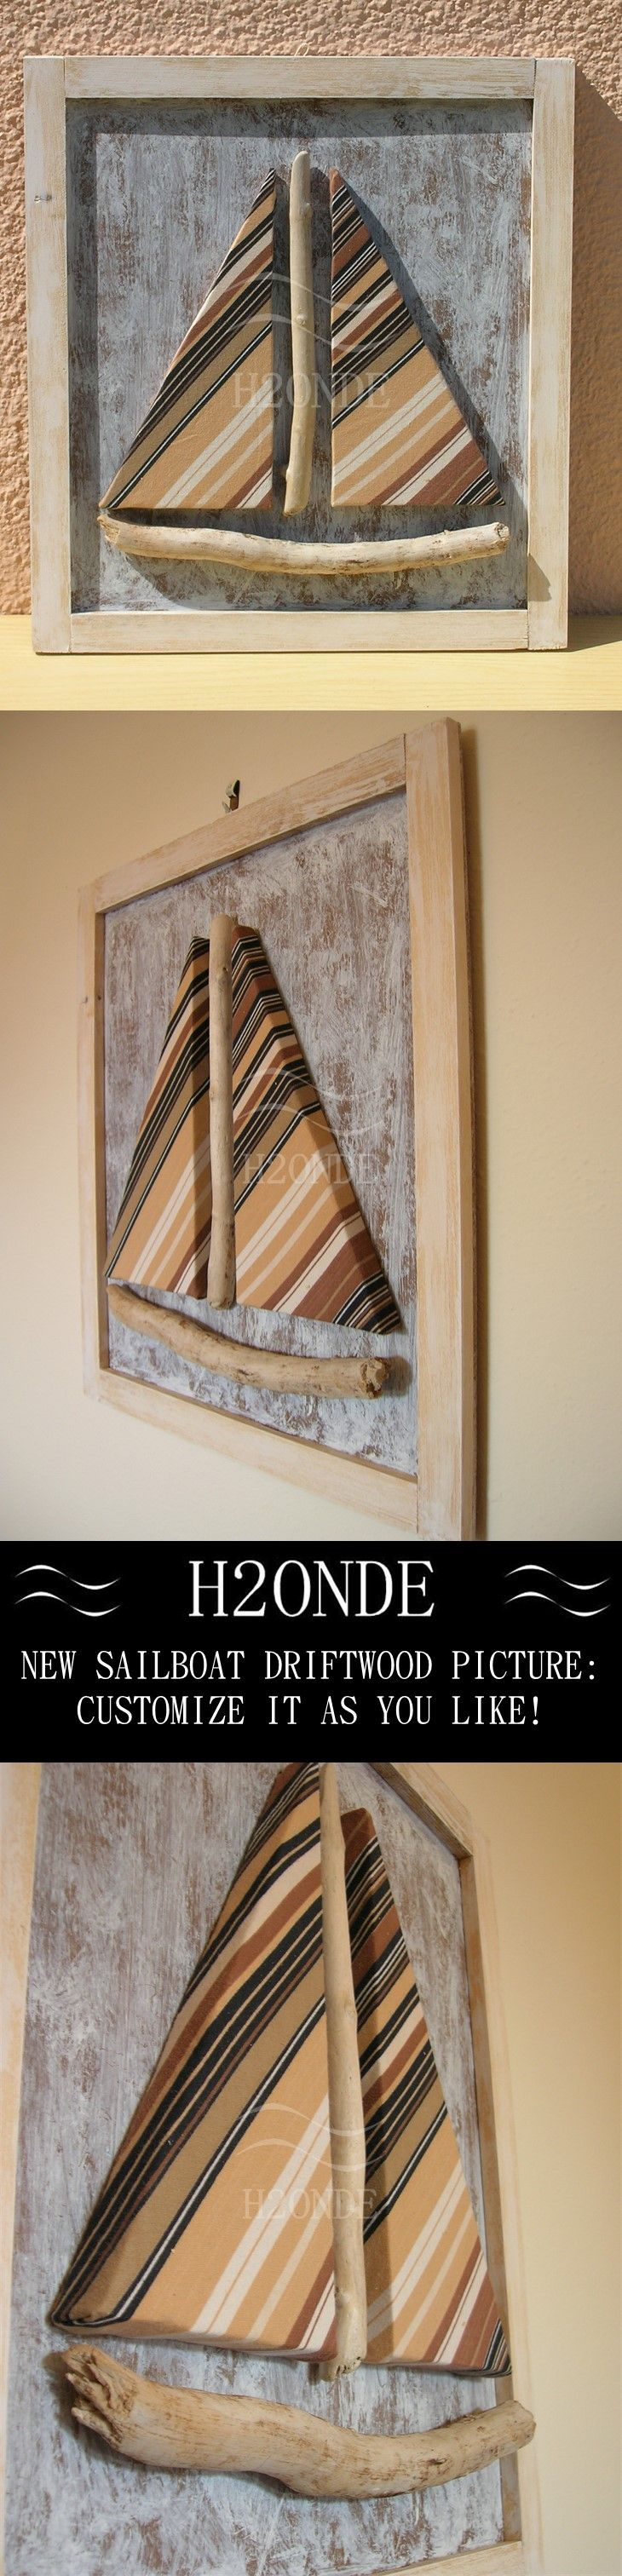 sailboat picture  driftwood picture  coastal wall art  white beach decor shabby…